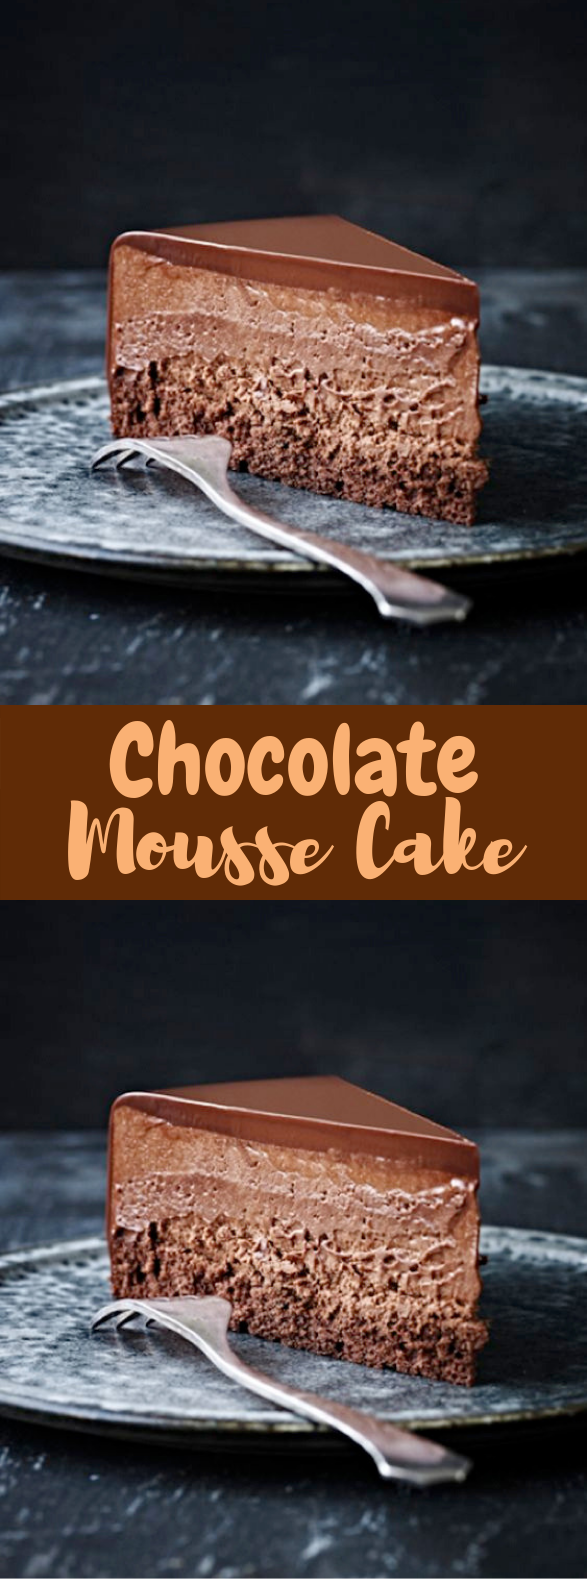 Chocolate Mousse Cake #Chocolate #Cake